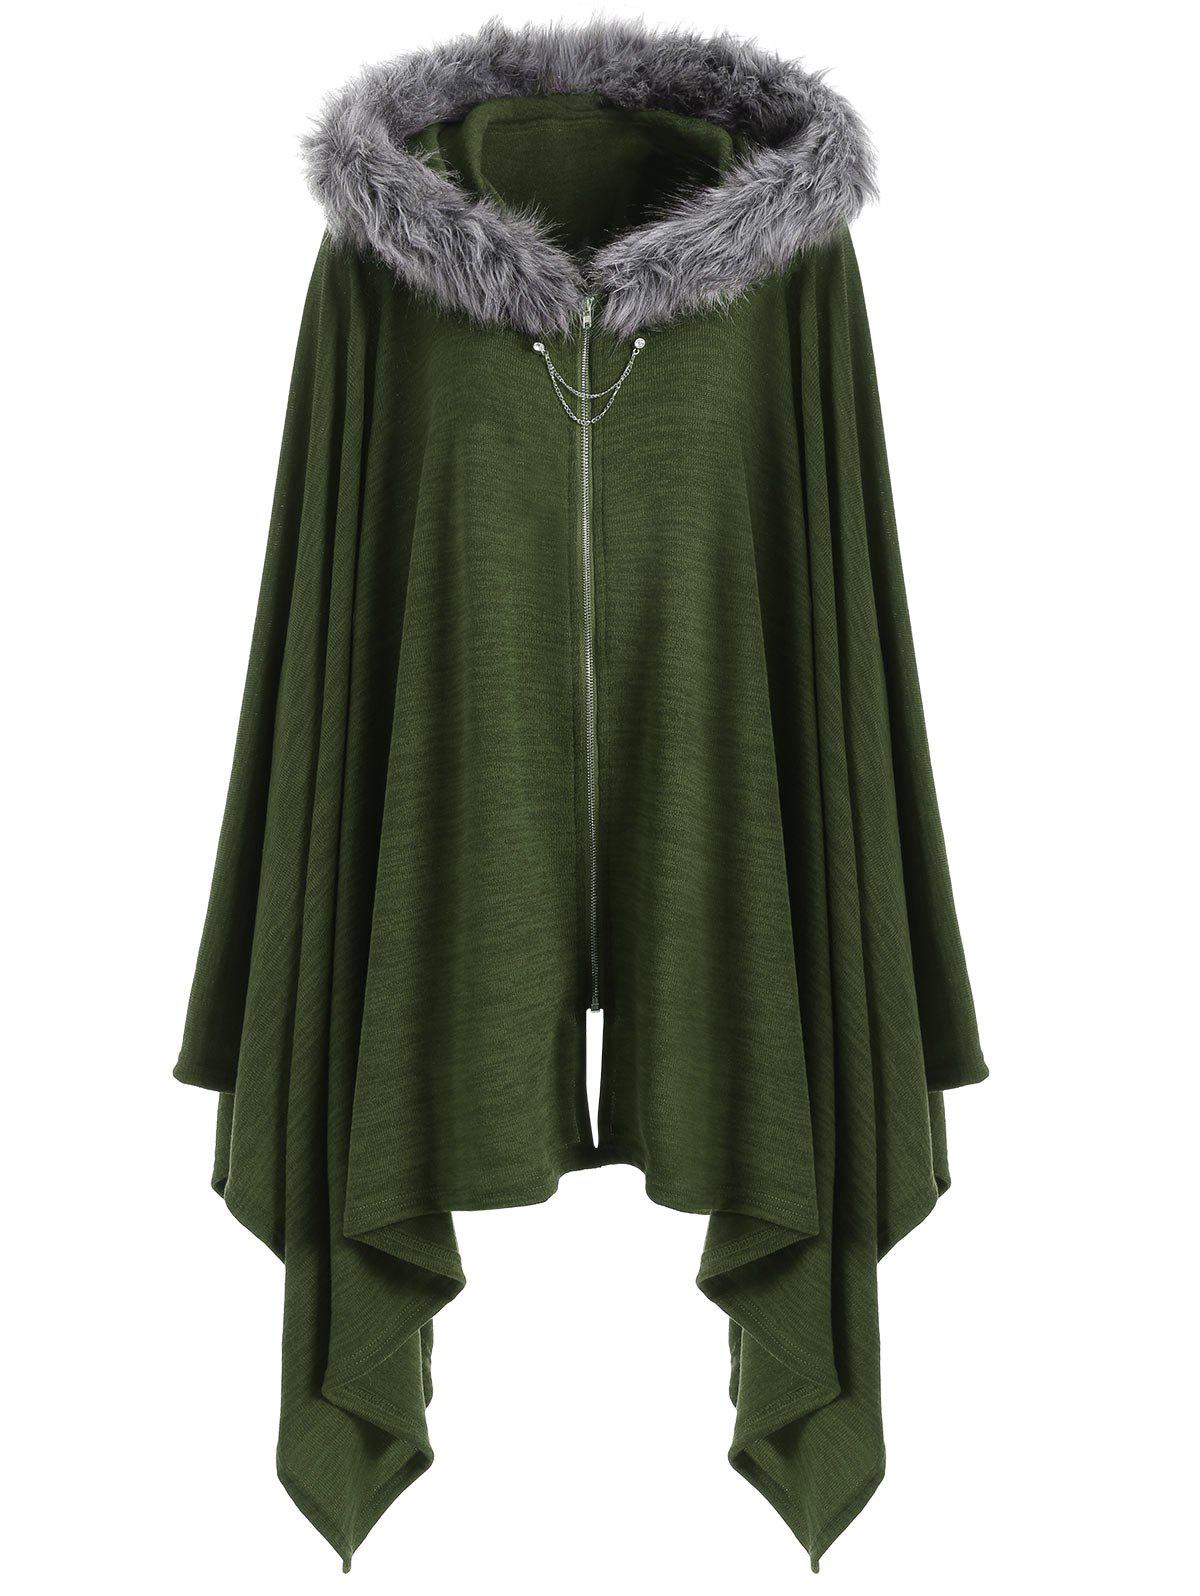 Faux Fur Insert Plus Size Asymmetric Cape CoatWOMEN<br><br>Size: 2XL; Color: ARMY GREEN; Clothes Type: Others; Material: Polyester,Spandex; Type: Wide-waisted; Shirt Length: Regular; Sleeve Length: Full; Collar: Hooded; Pattern Type: Solid; Style: Fashion; Season: Fall,Winter; Weight: 0.4700kg; Package Contents: 1 x Coat;